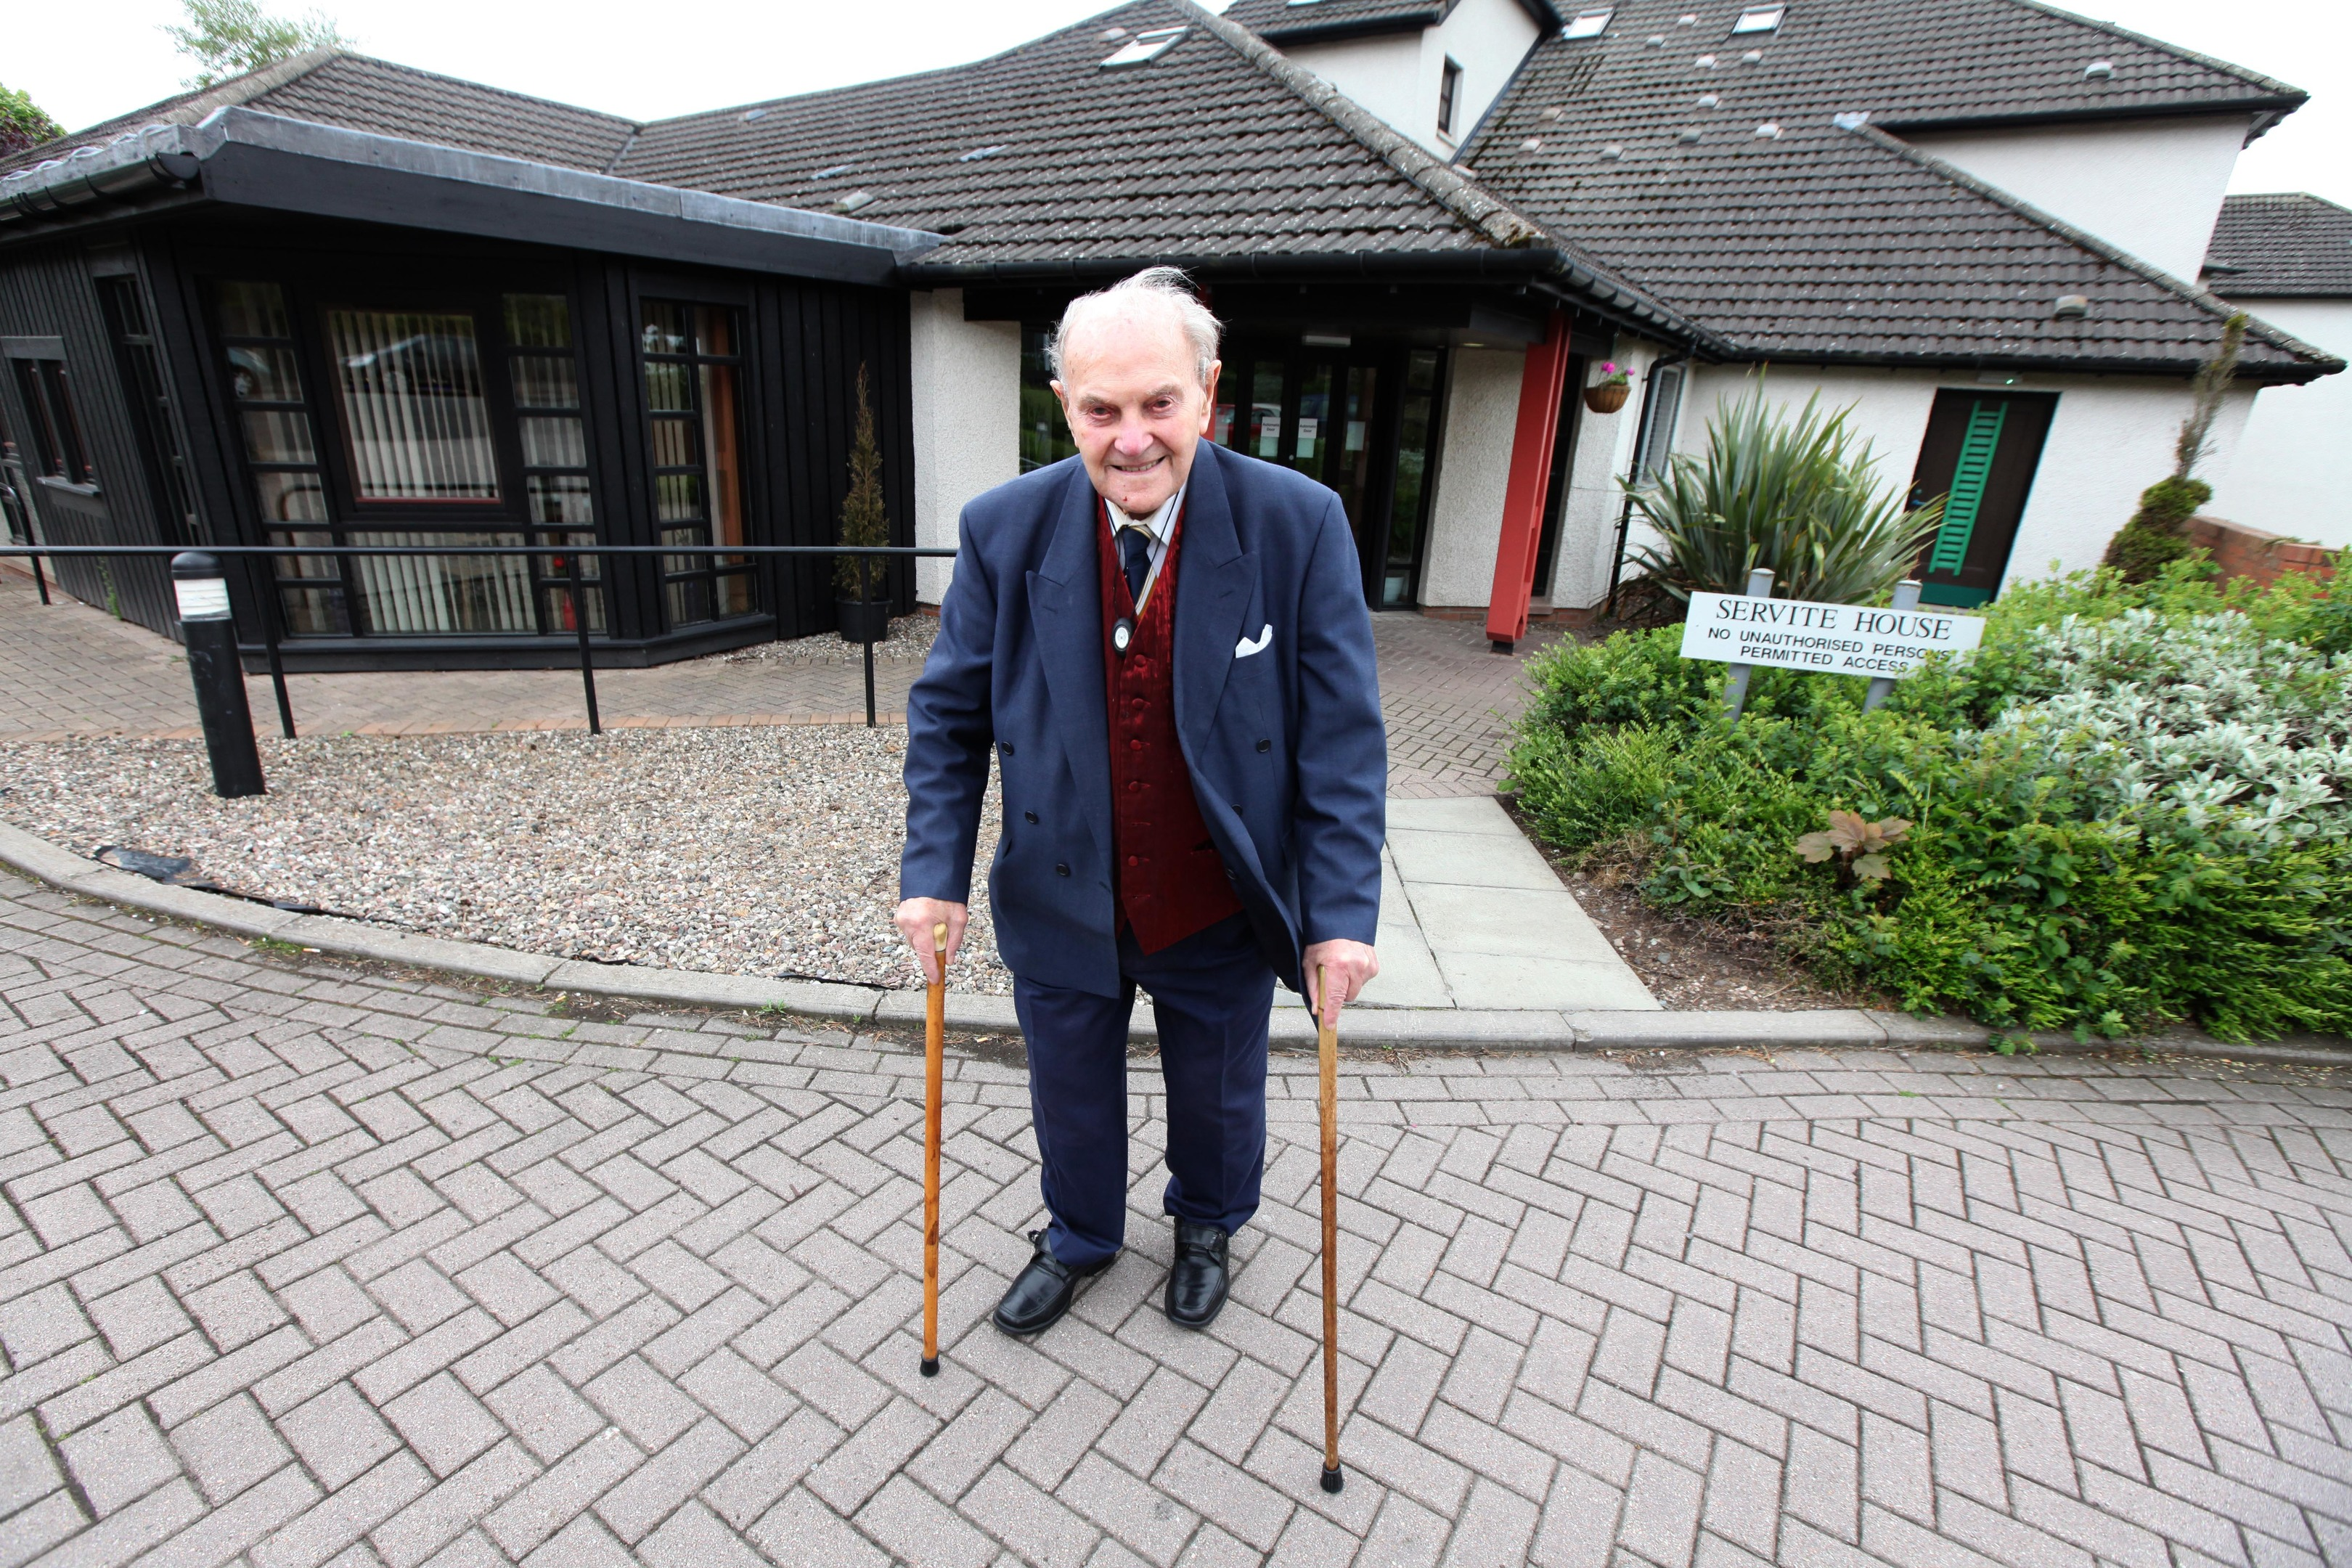 Centenarian Jack Stephen fears for the safety of residents.